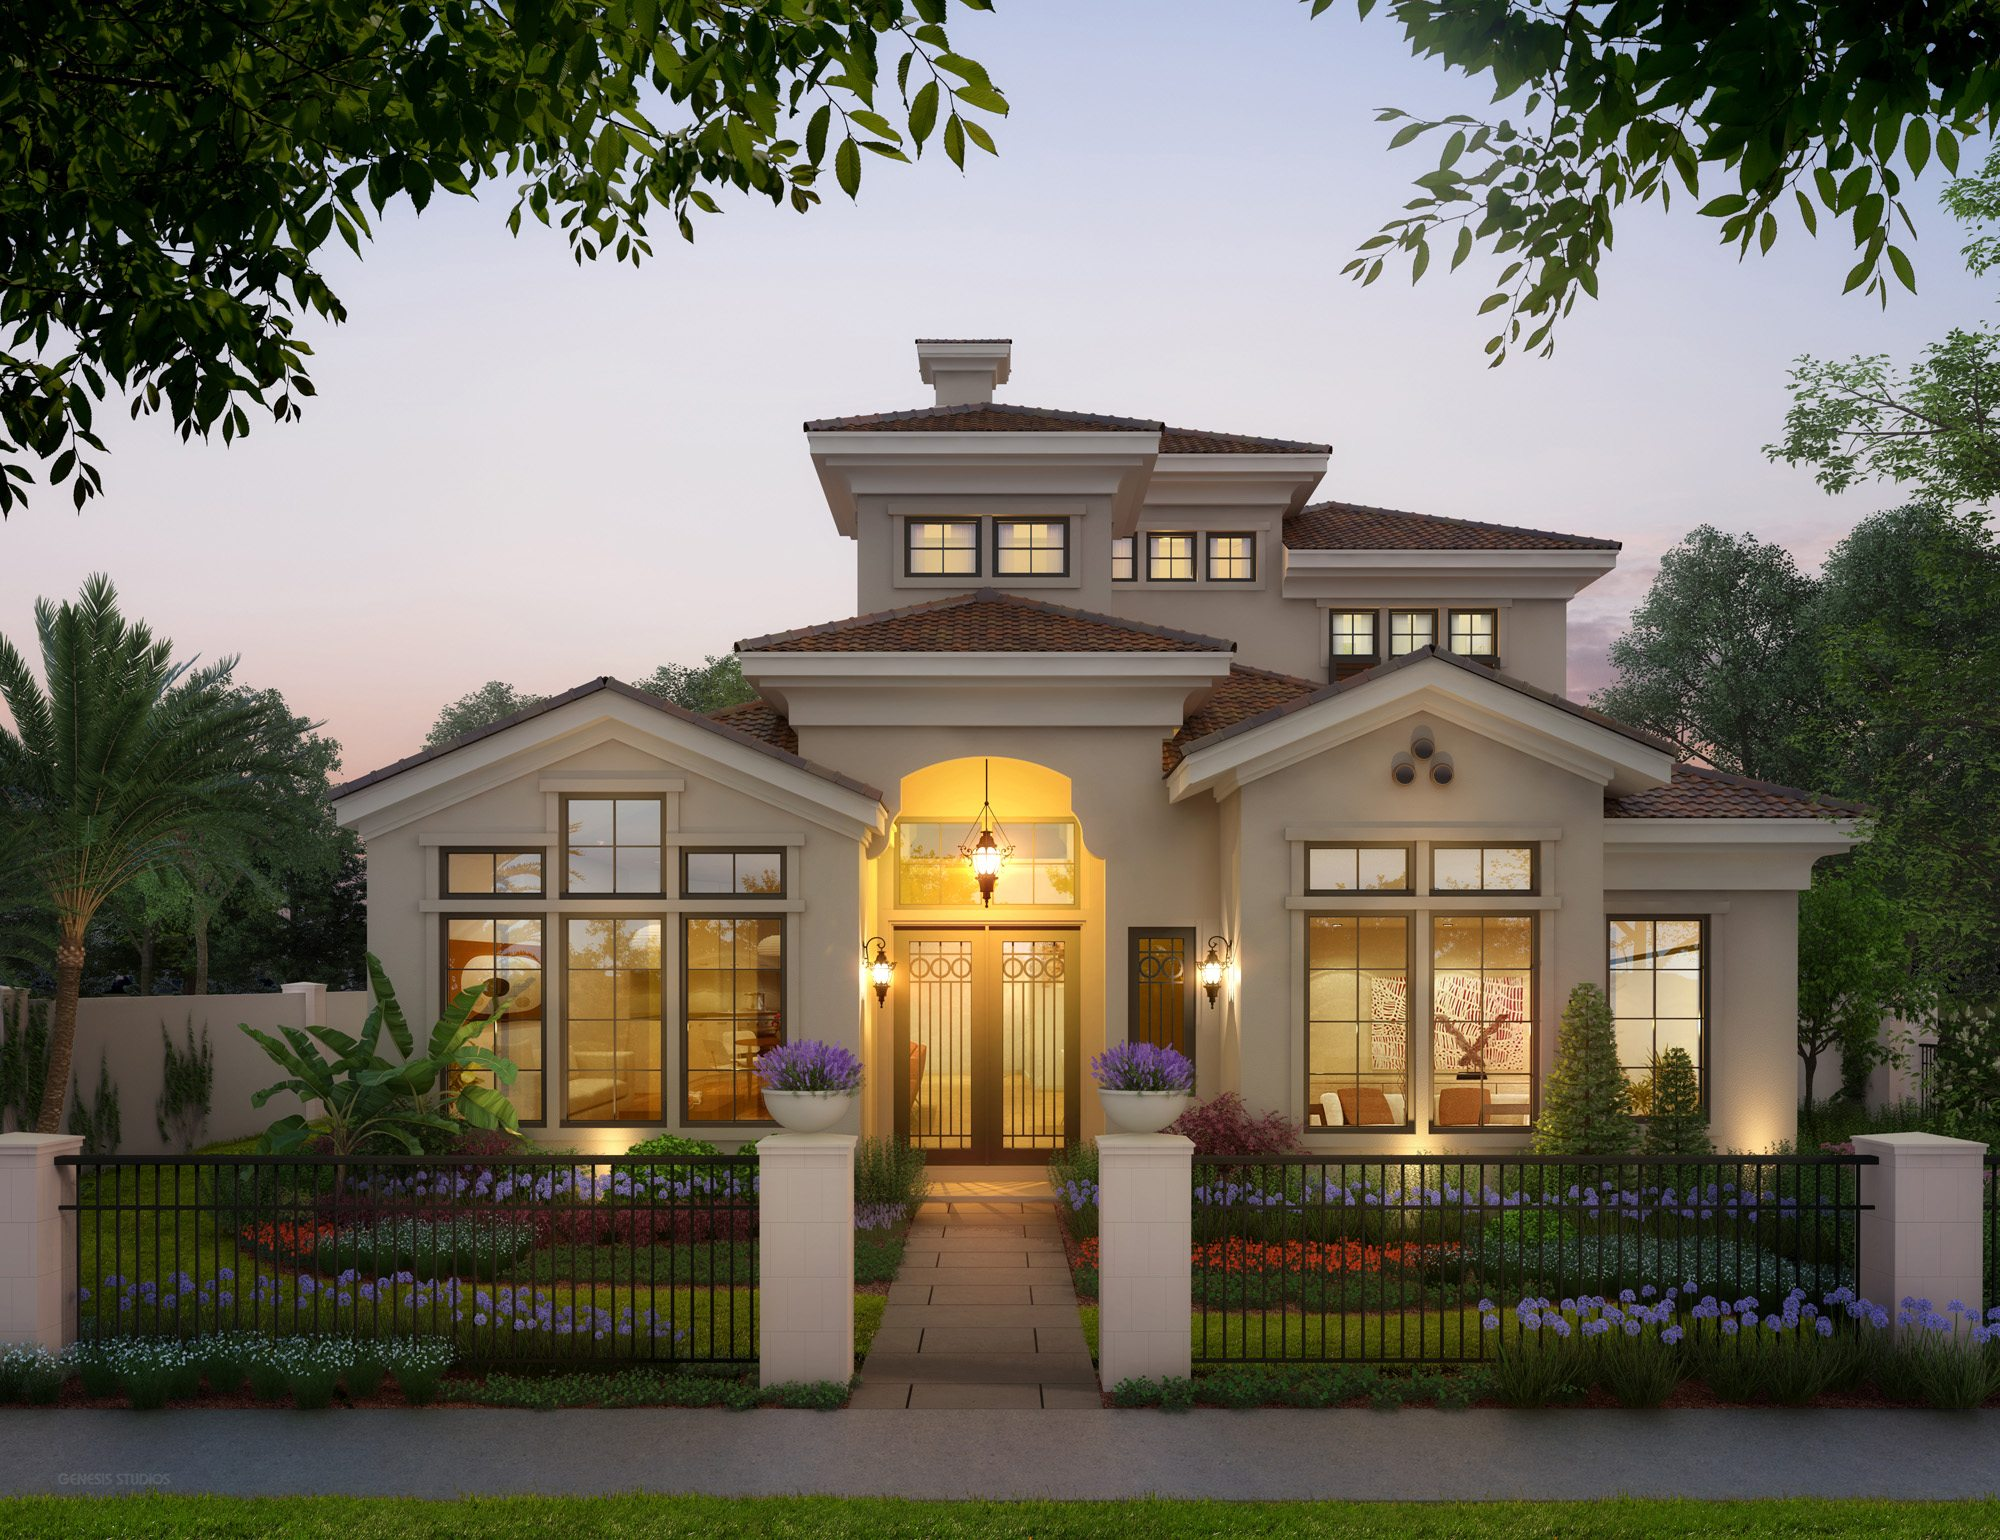 Santa barbara style homes coming to downtown winter park for Santa barbara style house